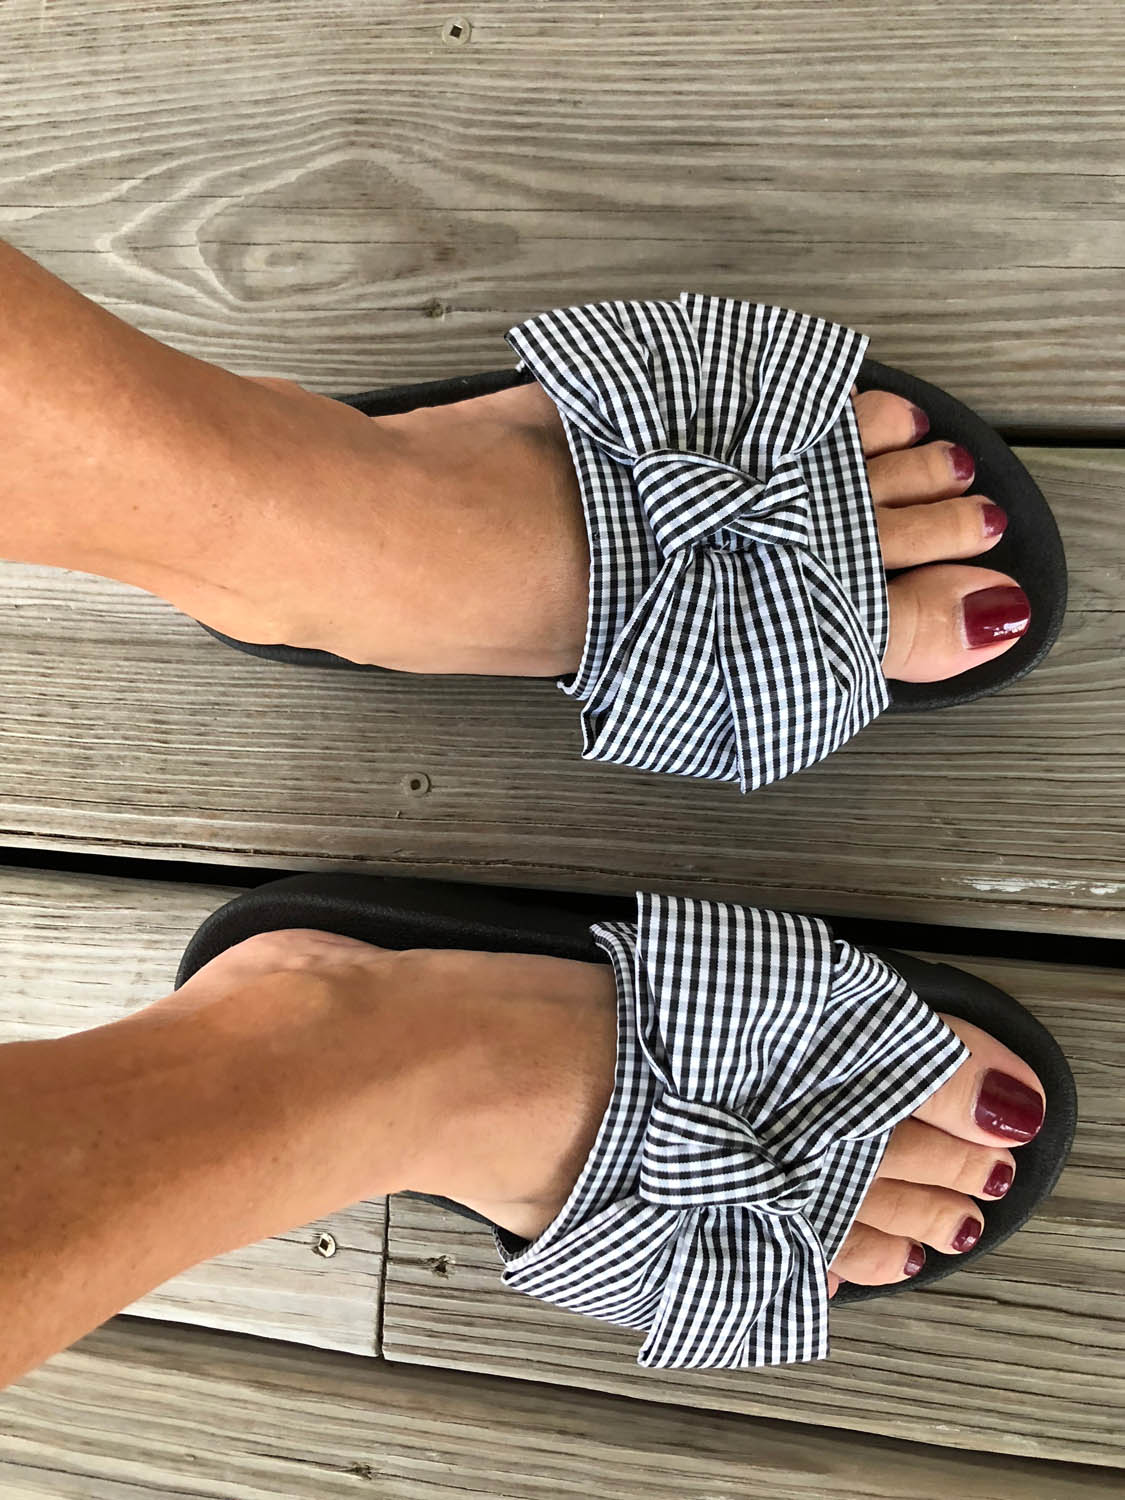 Must-have Southern flip flops